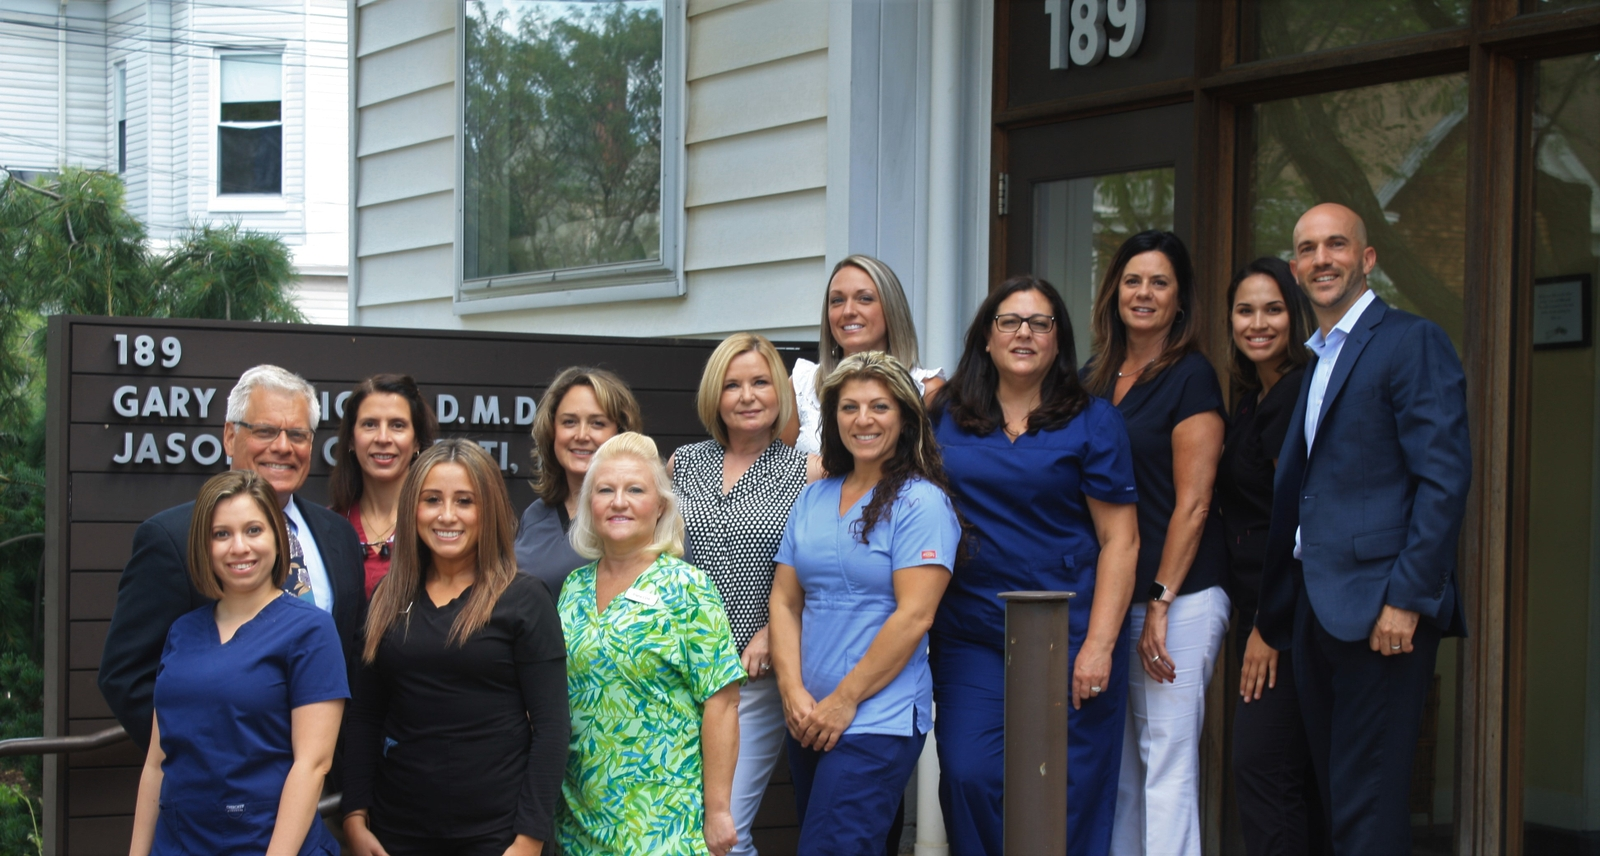 Rhode Island's Top Rated Local® Dentists Award Winner: Light And Conforti DMDs